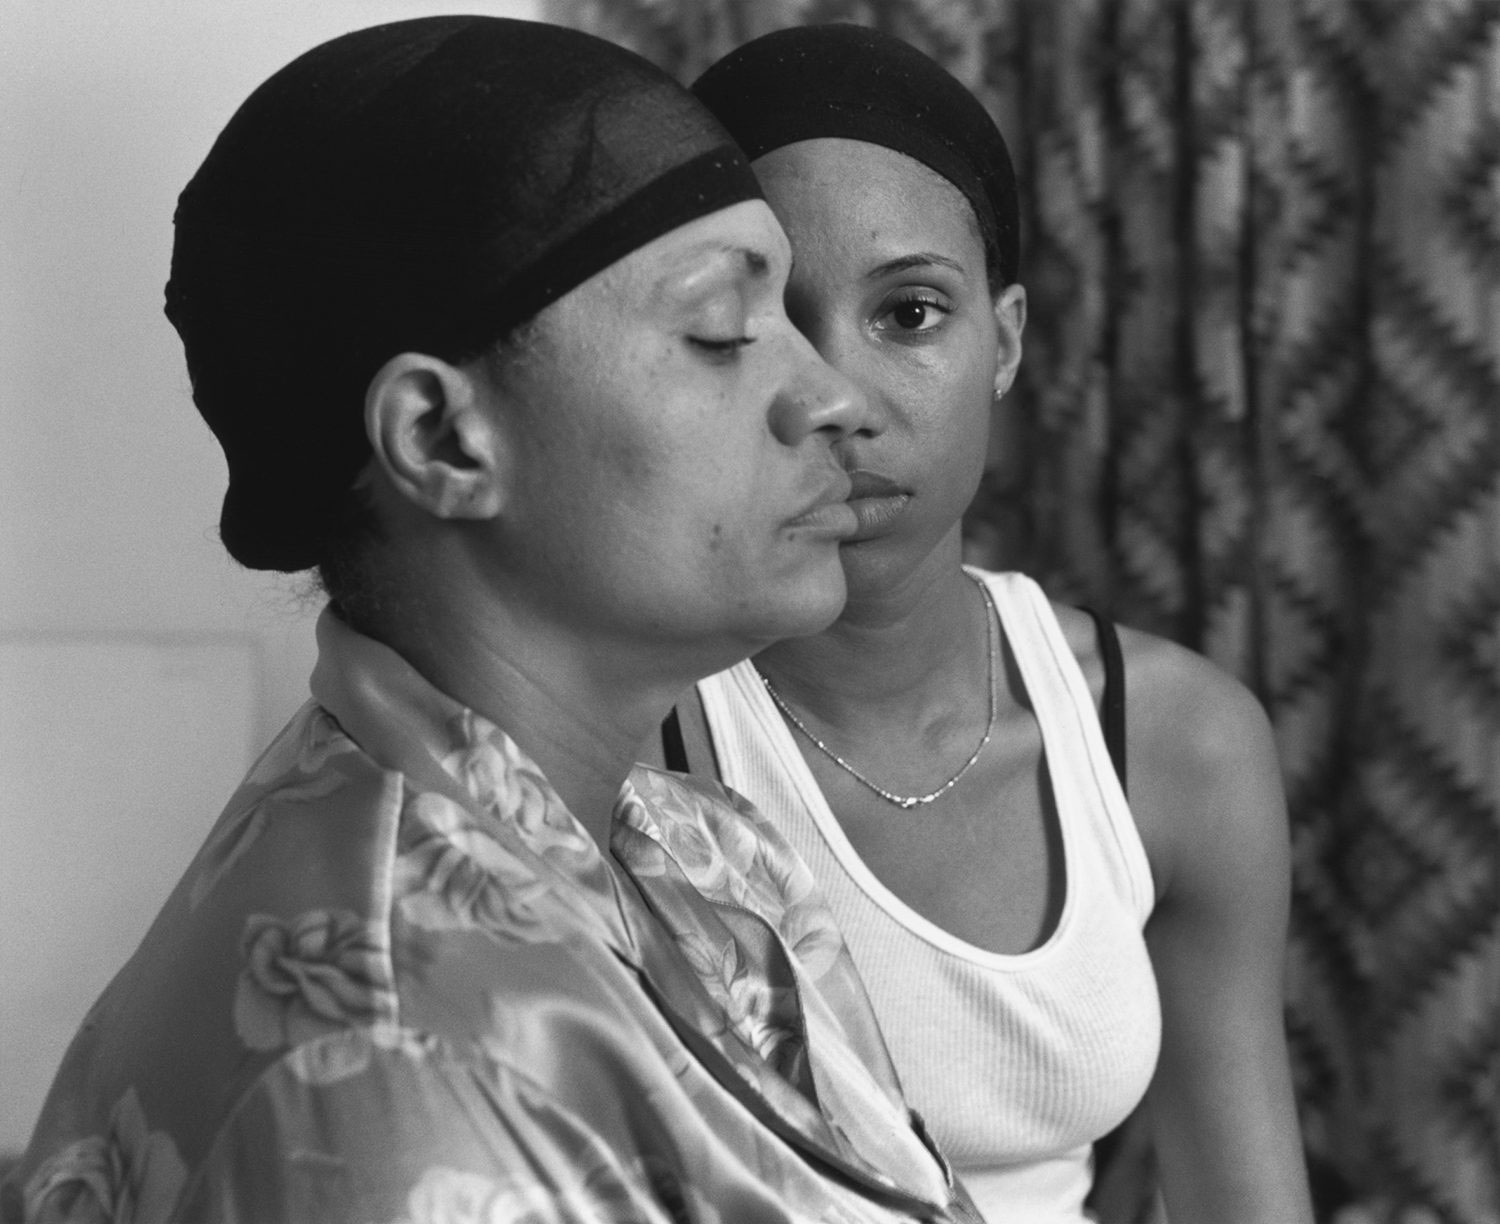 Momme, The Notion of family serie, LaToya Ruby Frazier, 2008.